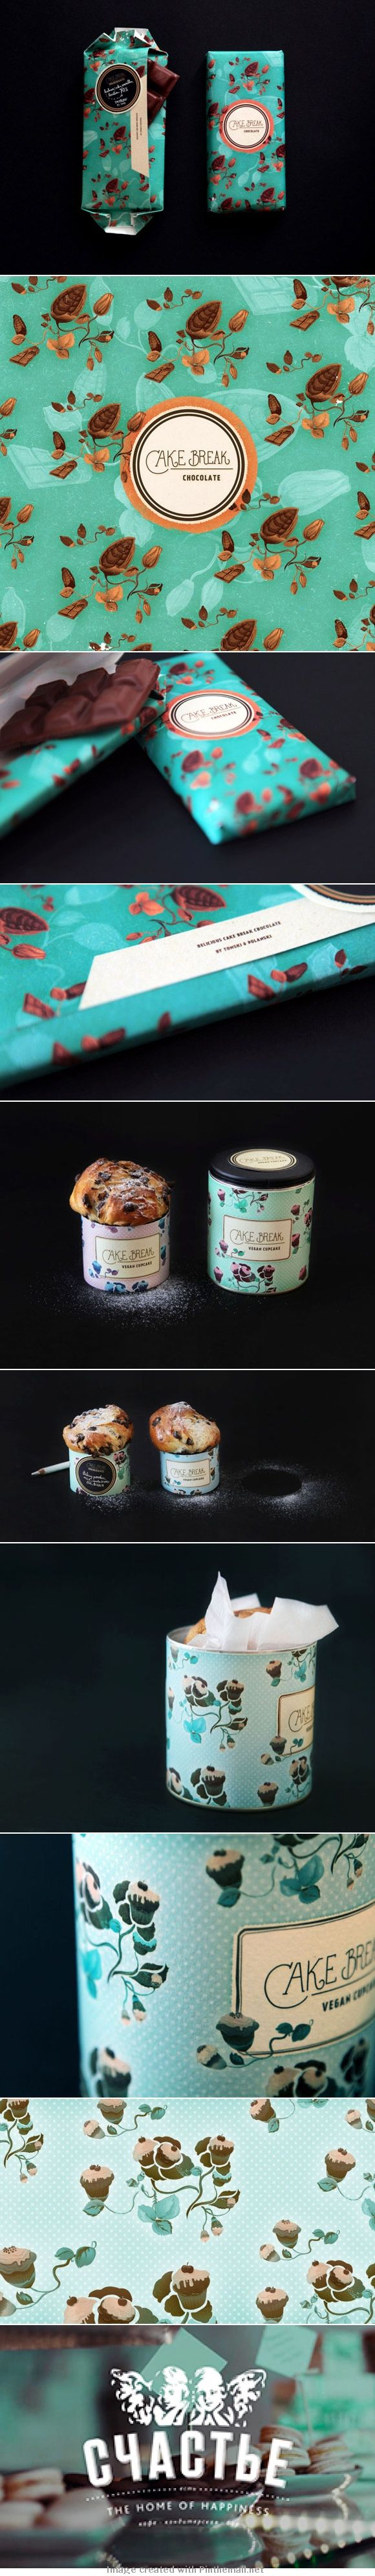 Let's take cake and coffee break with this beautiful #packaging curated by Packaging Diva PD created via http://wtpack.ru/daily/tomski-polanski/